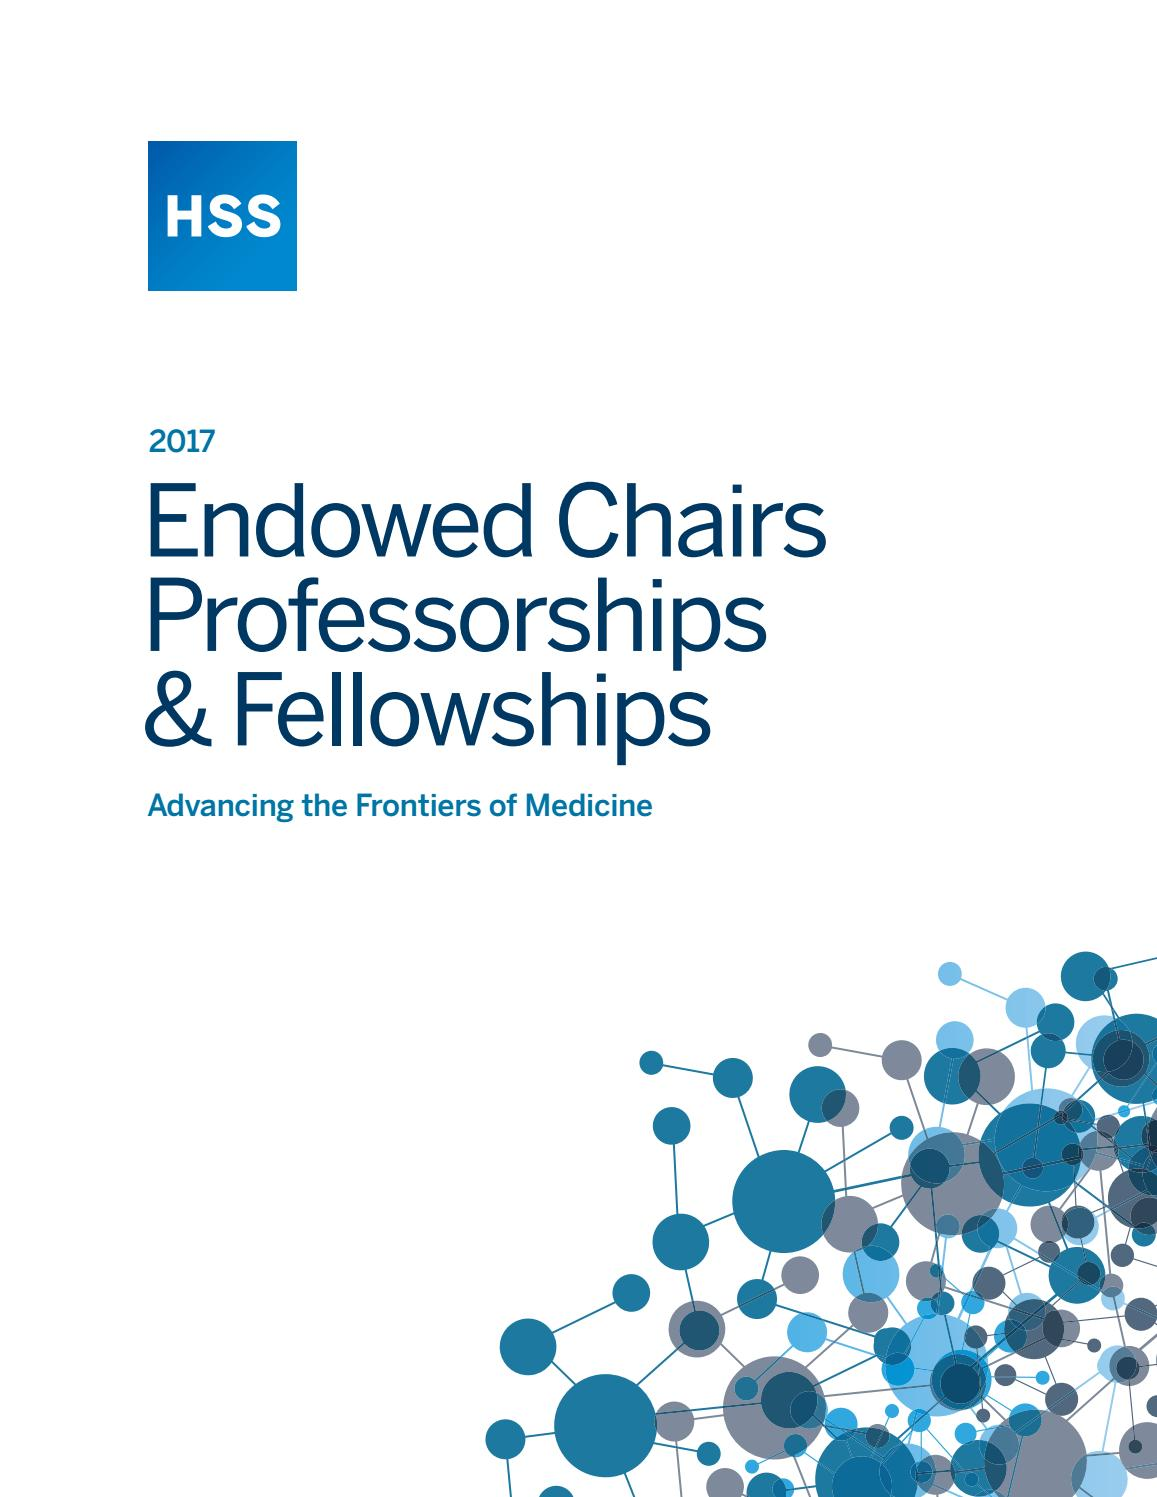 Endowed Chairs Brochure 2017 by Hospital for Special Surgery